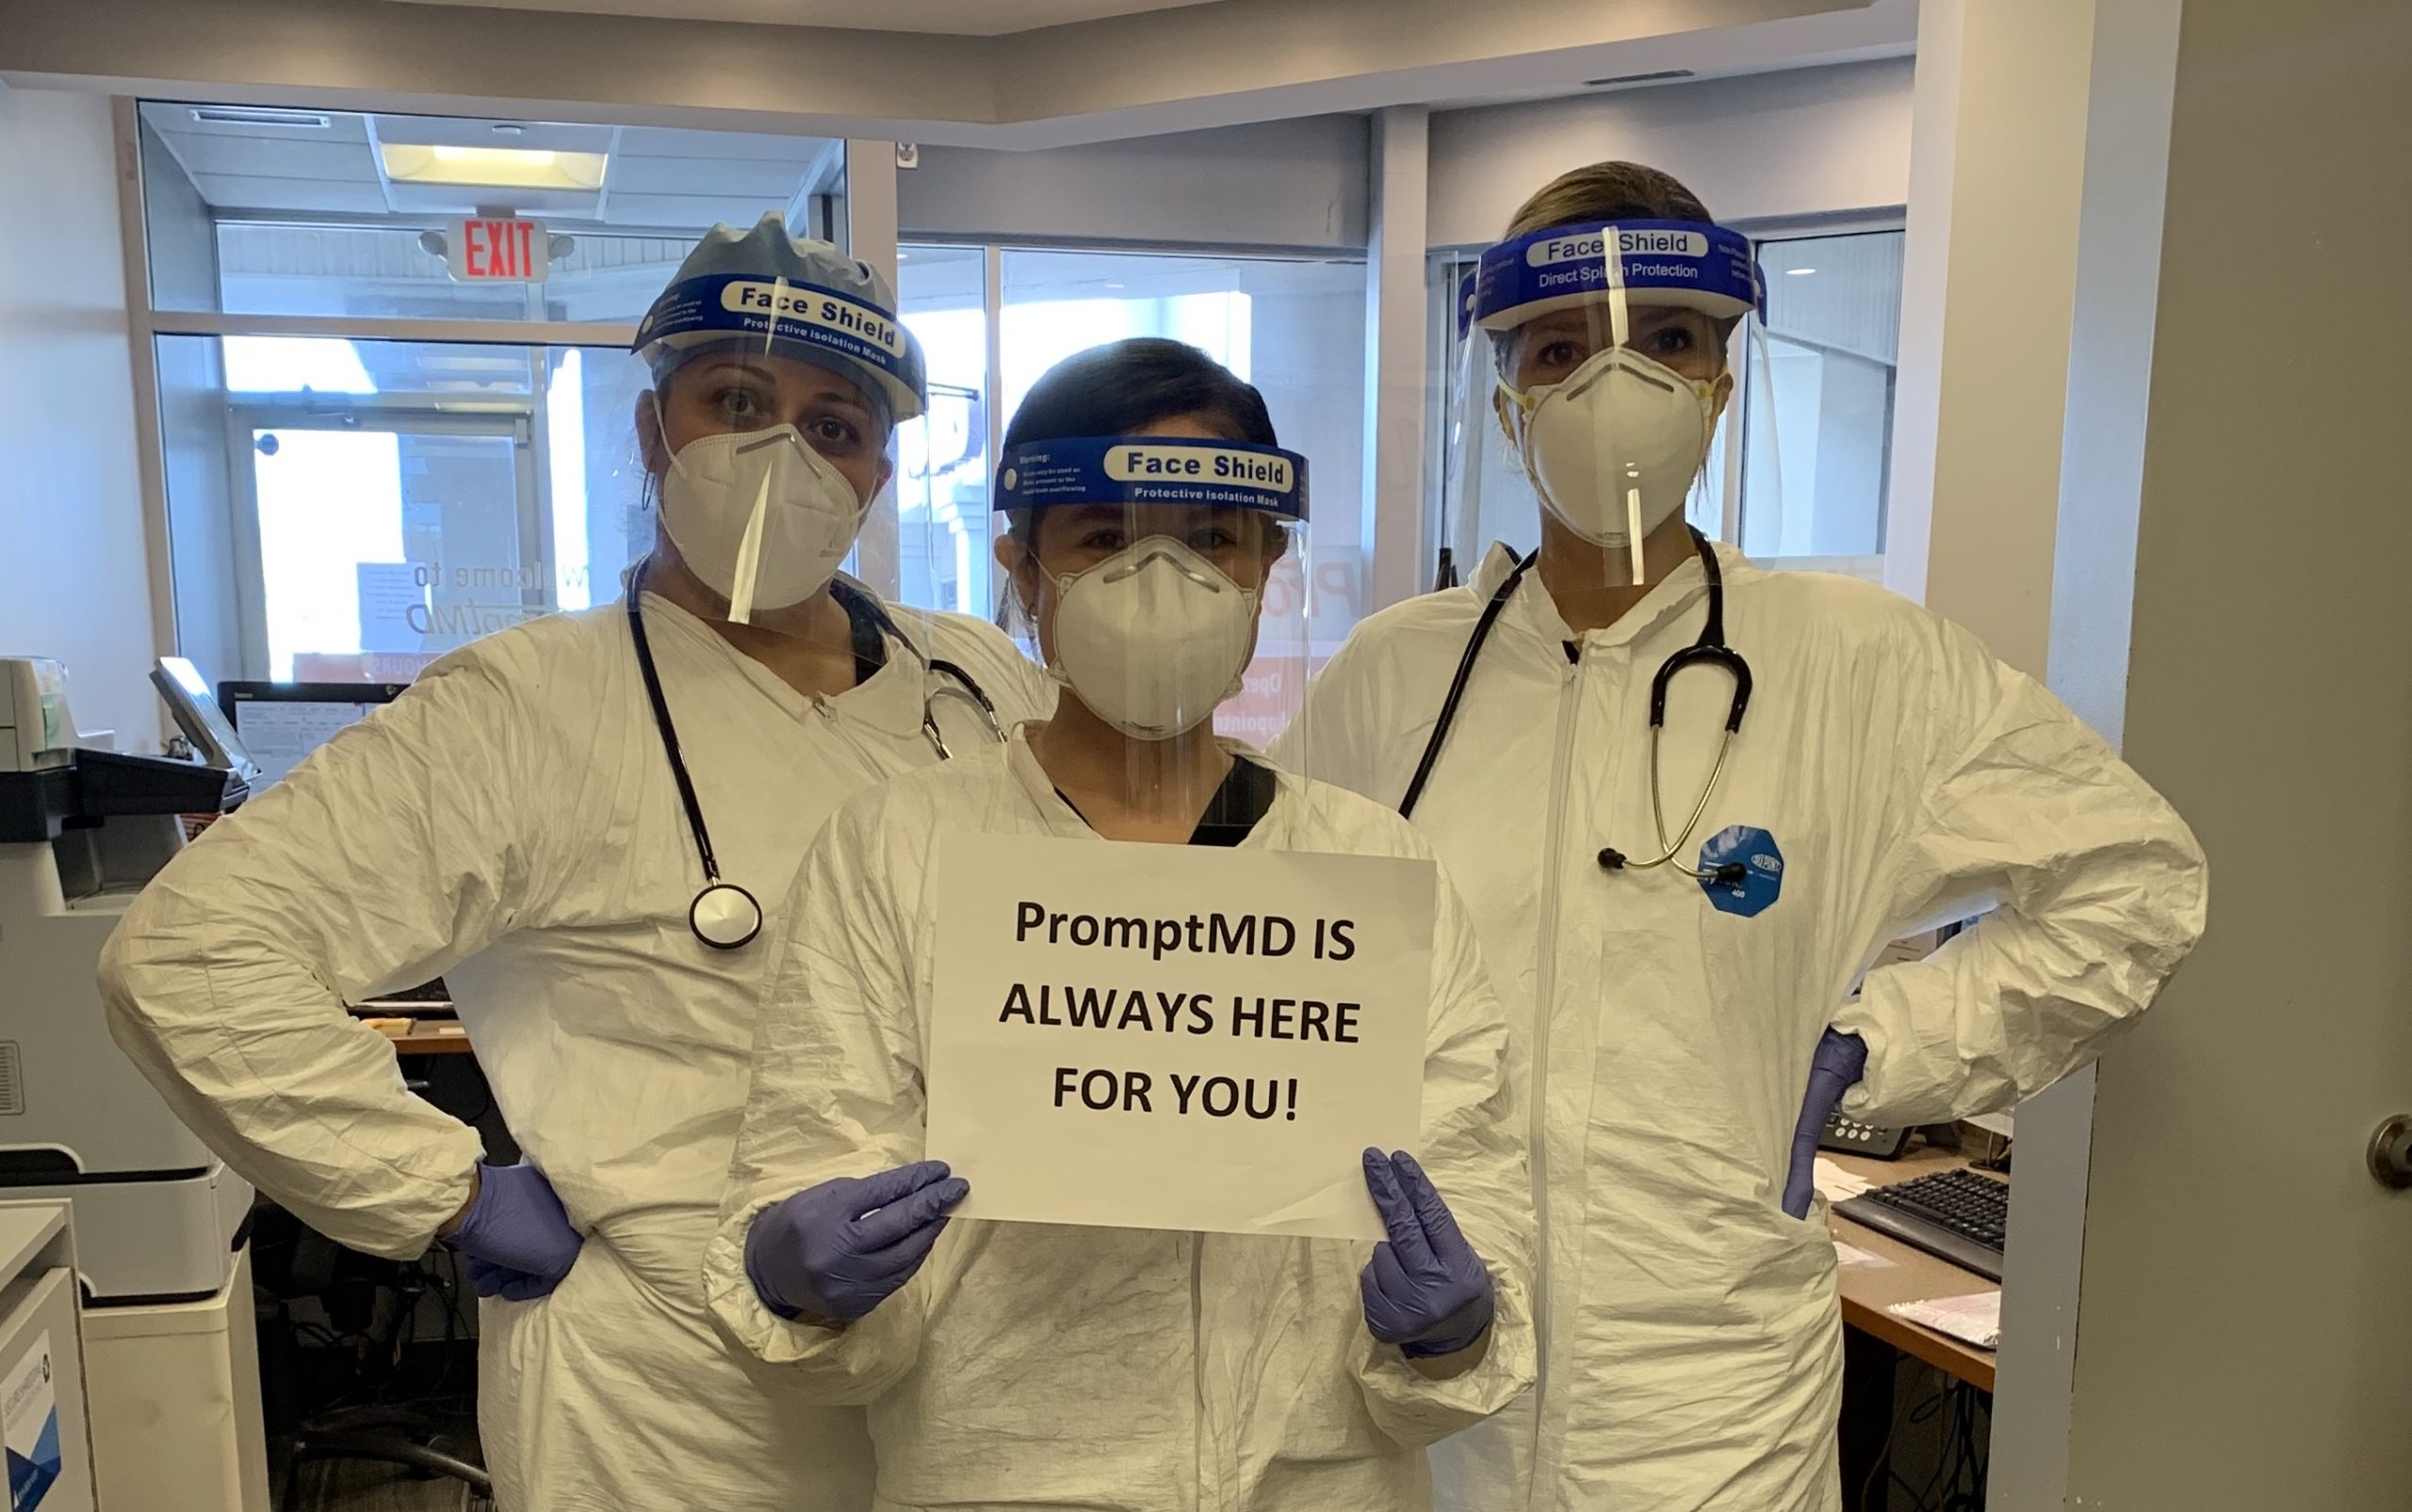 COVID-19 services doctors in PPE  - PromptMD Urgent Care - Hoboken, Jersey City, Edgewater